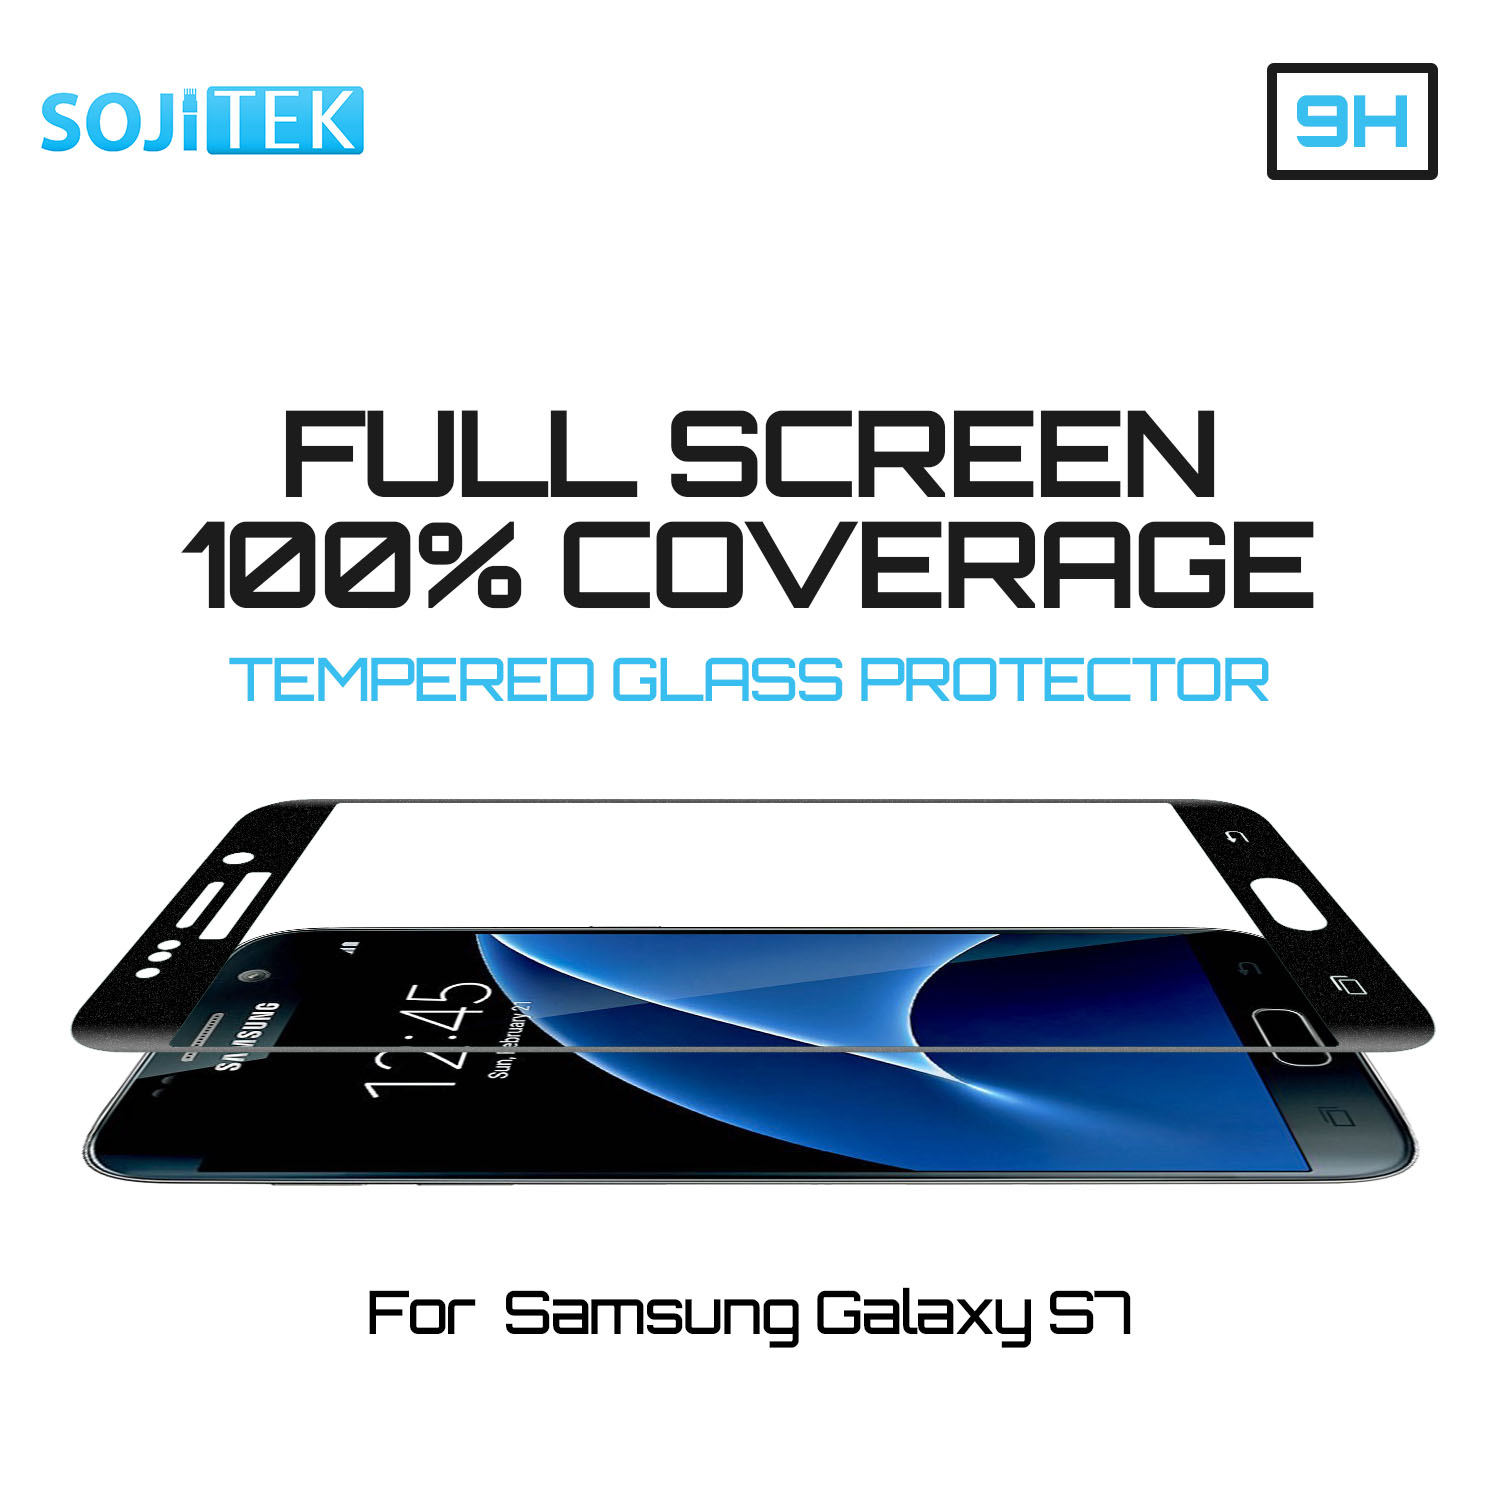 TortugaArmor Samsung Galaxy S7 100% Full Screen Coverage (NOT 3D) Including Curved Edge Black Premium Ballistic Tempered Glass Screen Protector w/ Lifetime Replacement Warranty - (HD) Ultra Clear Clarity